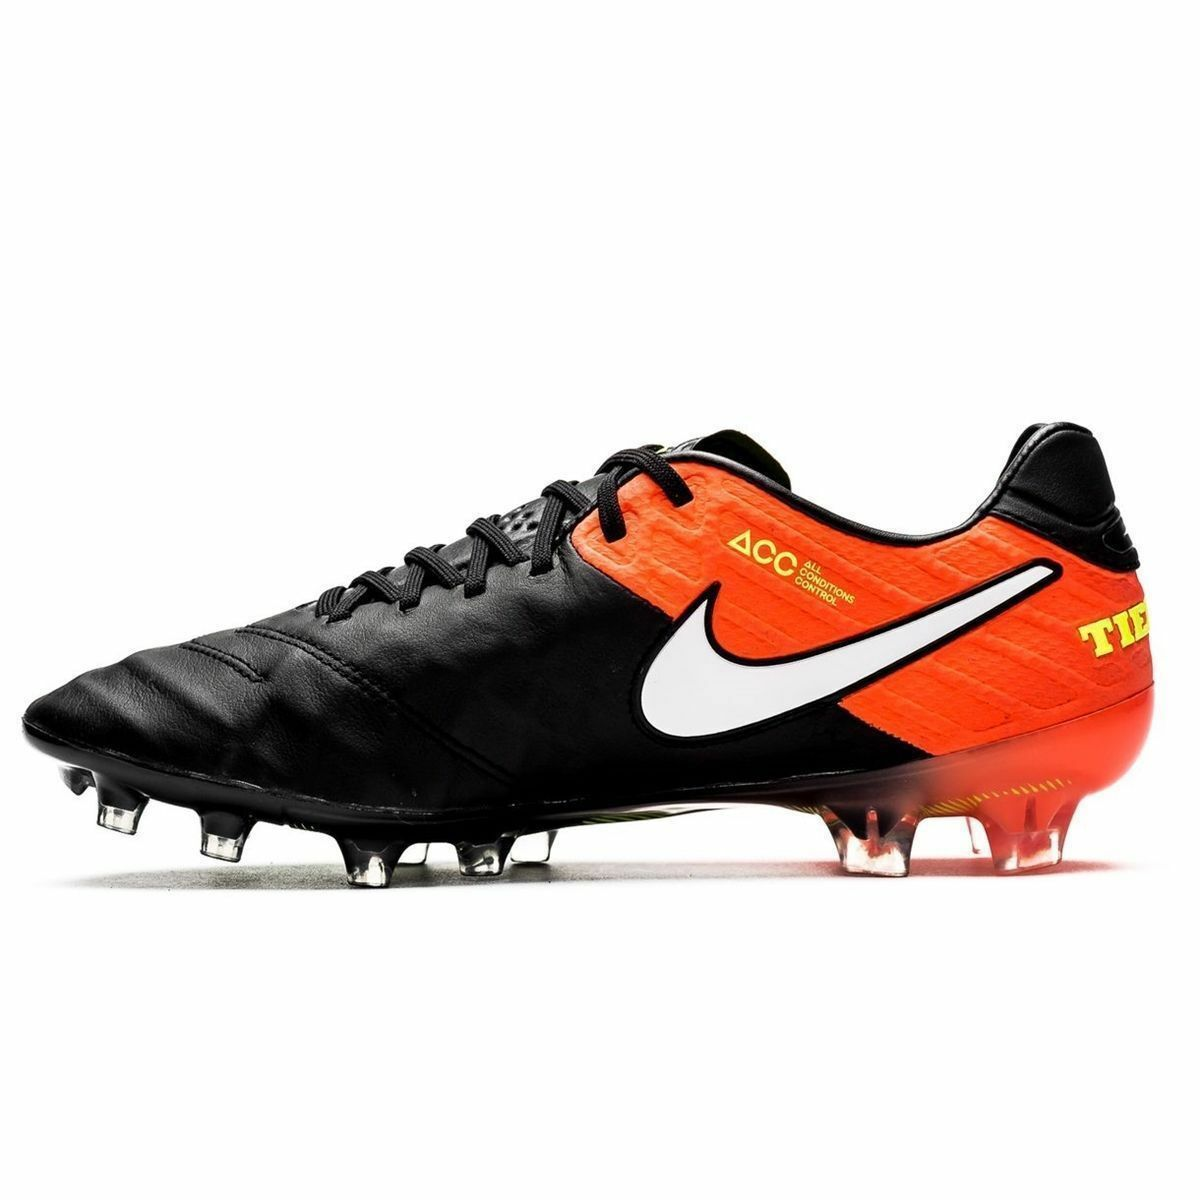 New Nike Men Tiempo Legend Vl FG Soccer Cleats Black/White/Orange 819177-018 ***